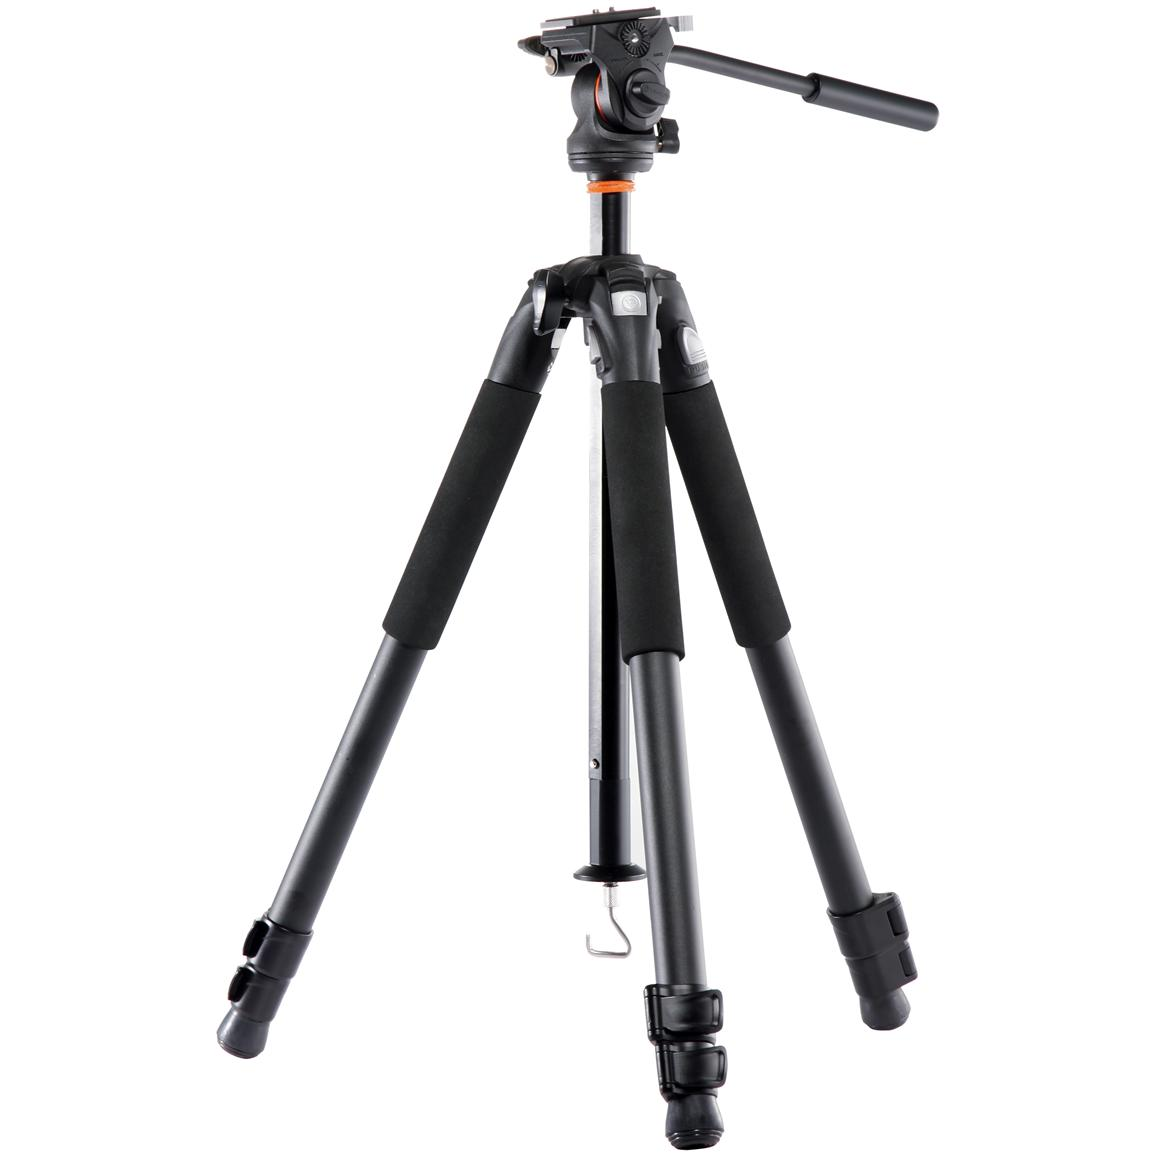 Vanguard® ABEO 283AV Aluminum Alloy Video Tripod